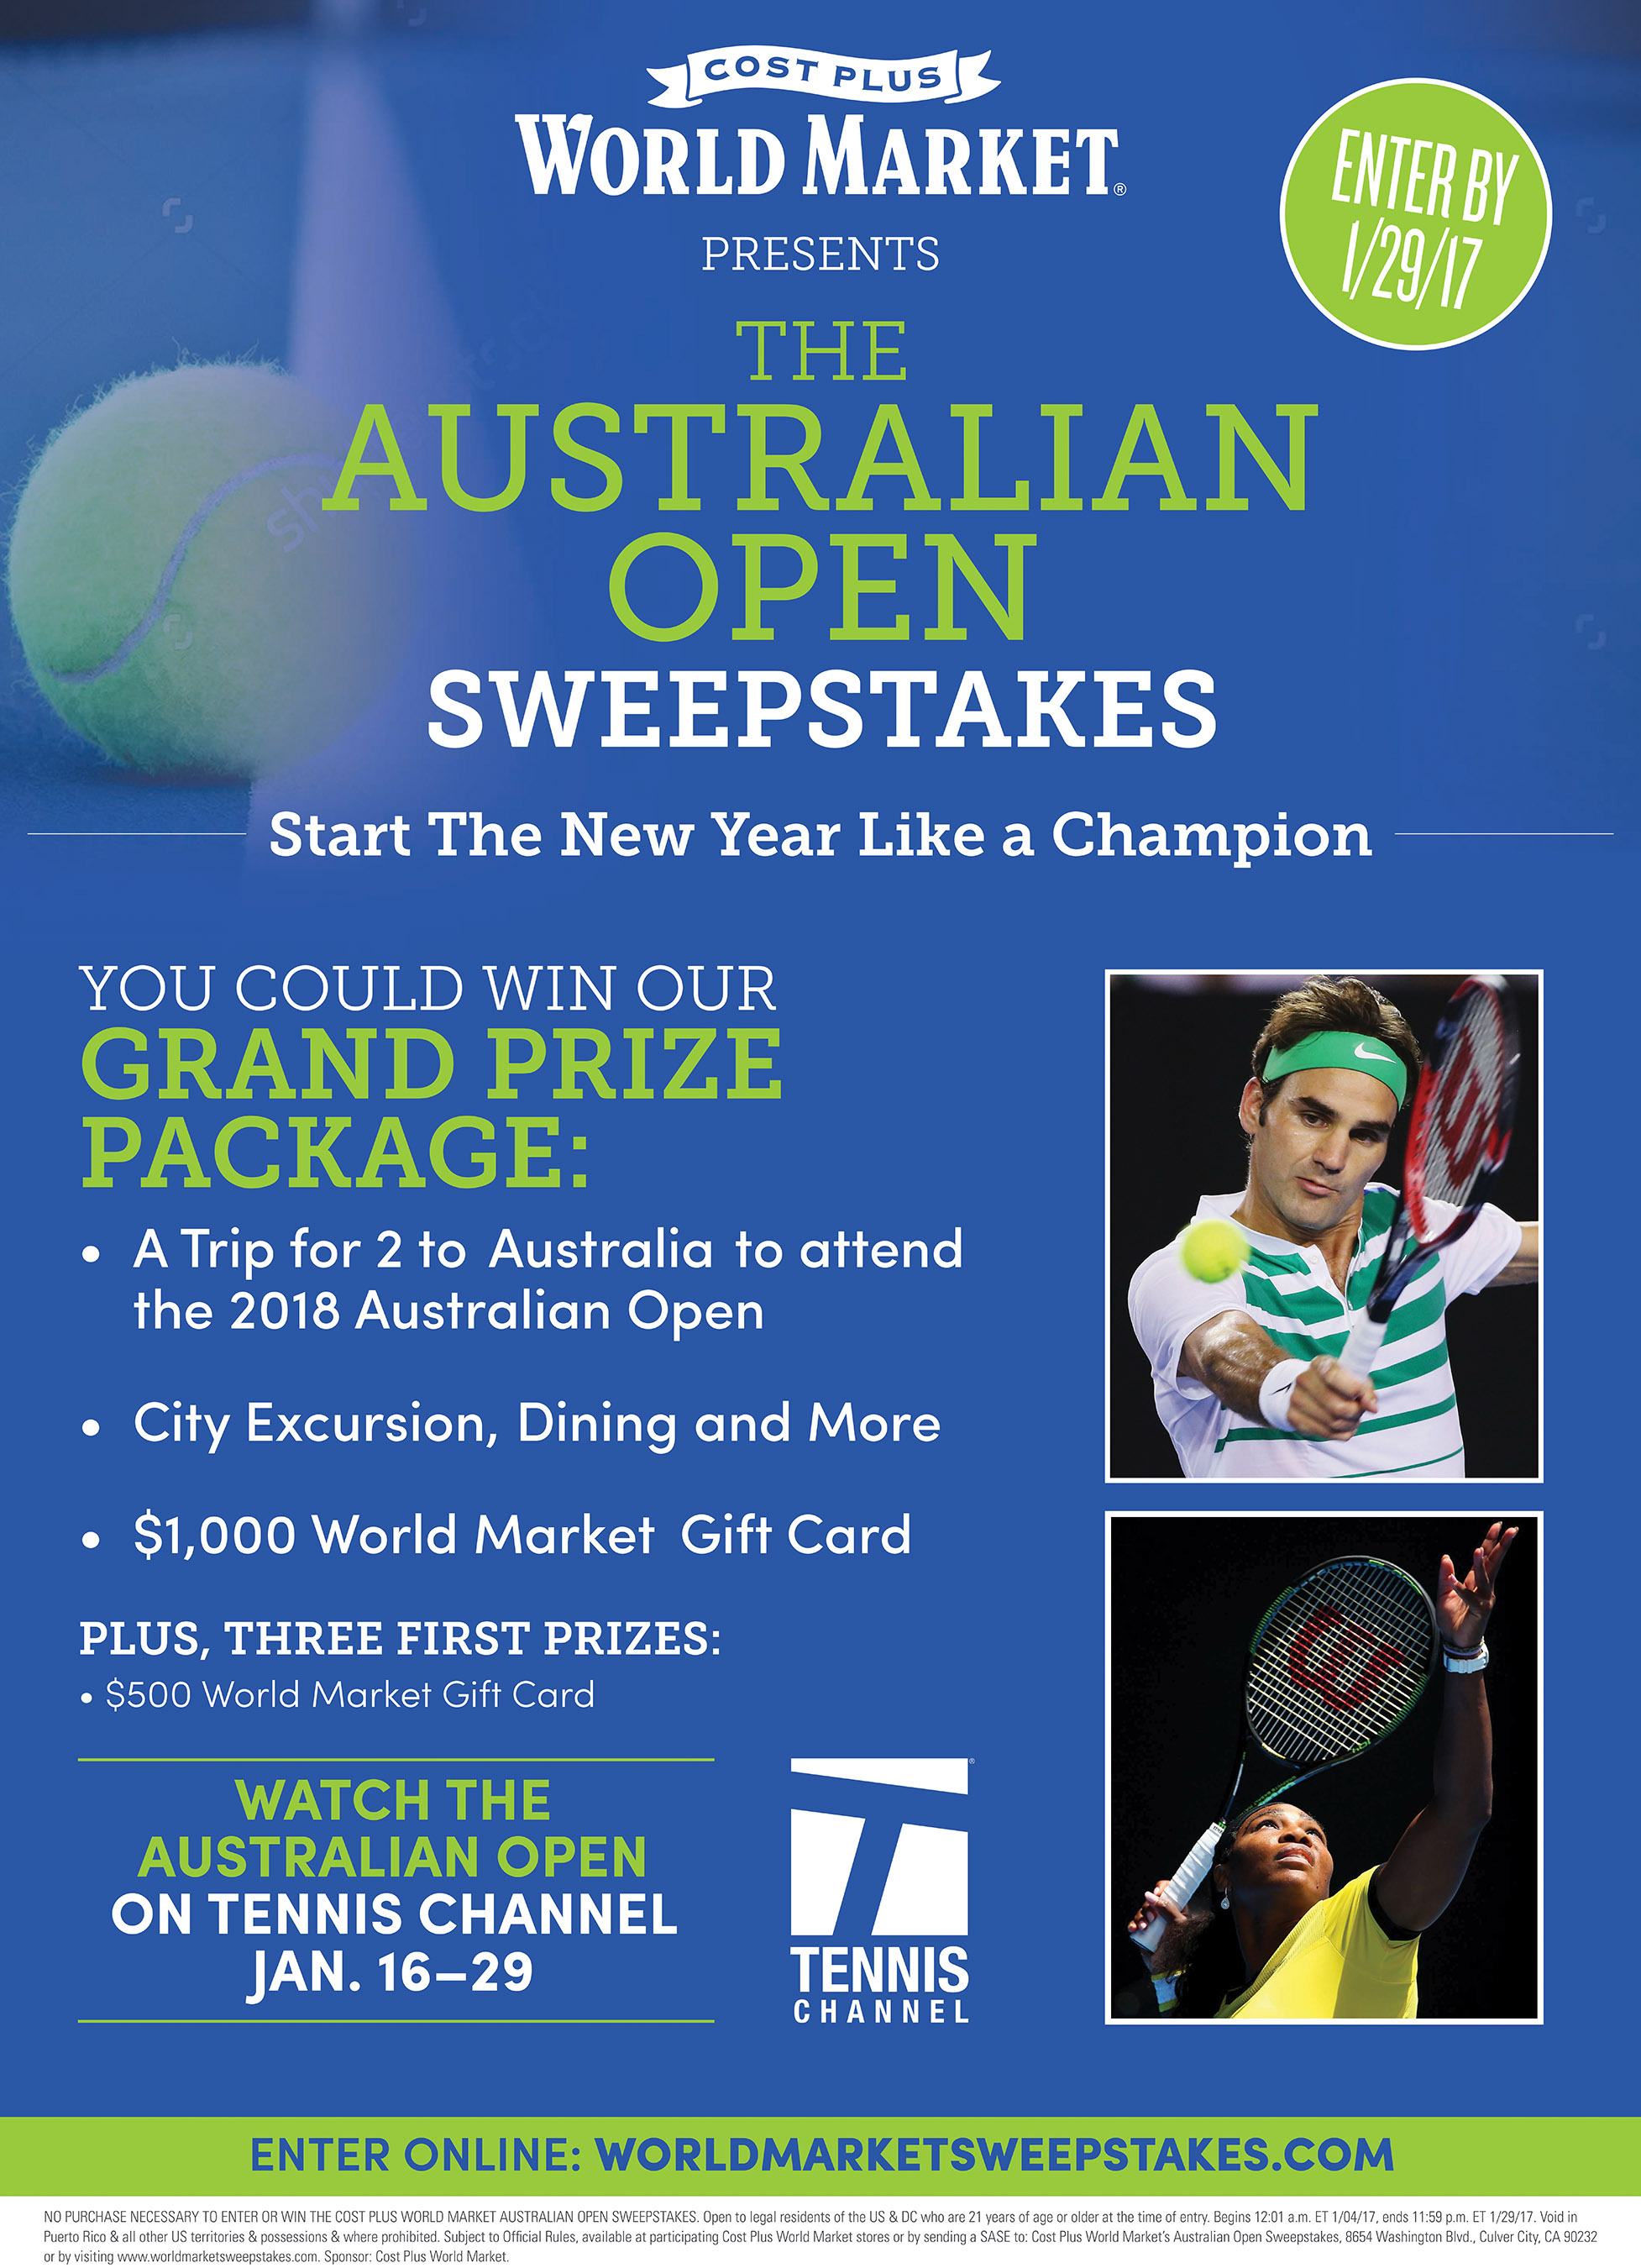 Cost Plus World Market Launches the Australian Open Sweepstakes Now ...